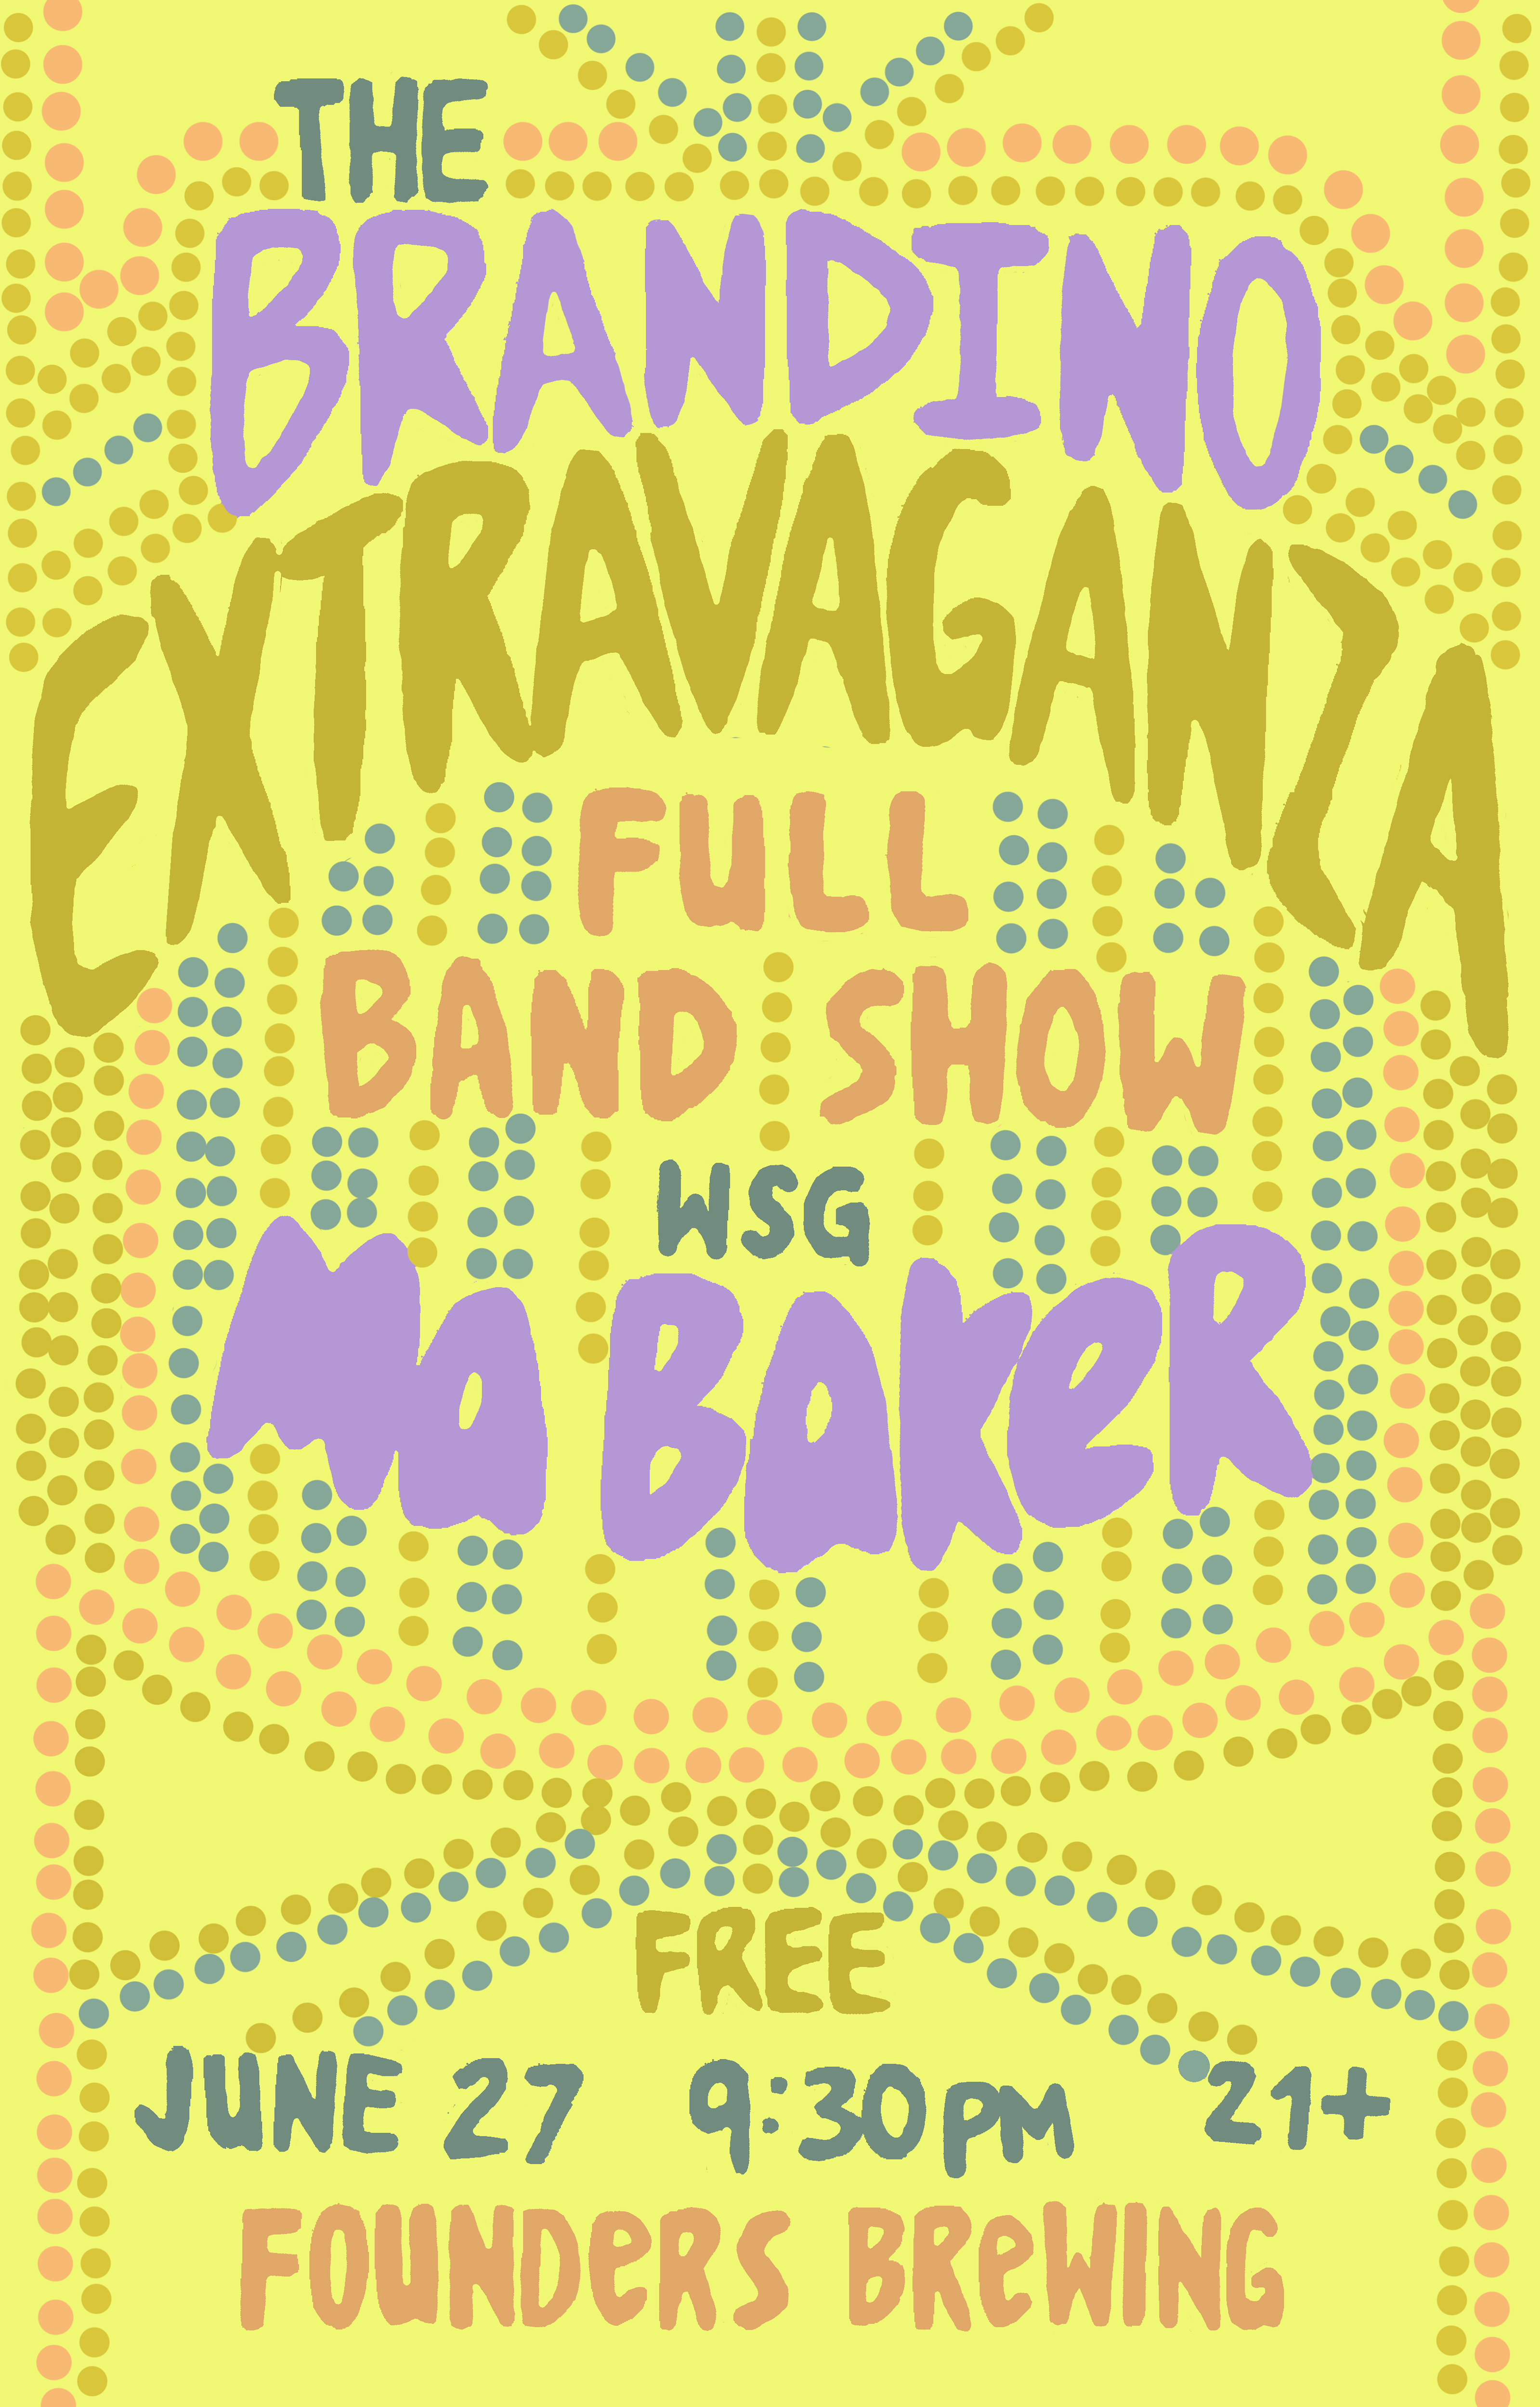 The Brandino Extravaganza Full Band Show event poster